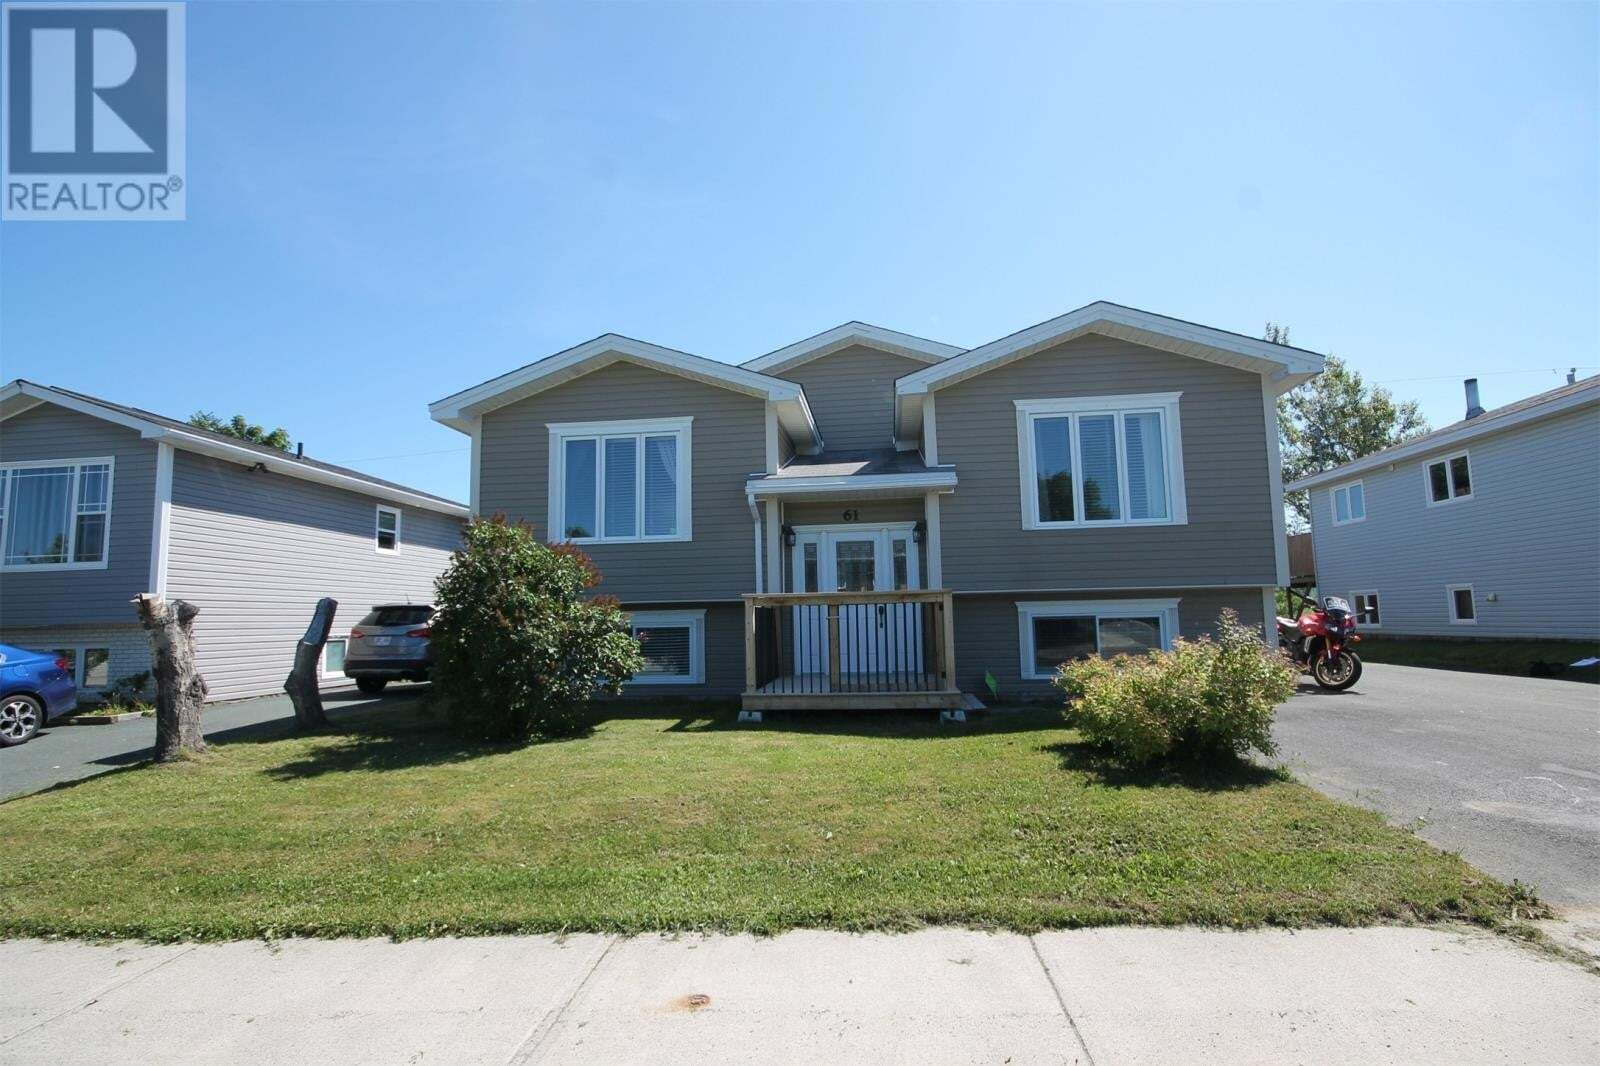 House for sale at 61 Kerry Ave Conception Bay South Newfoundland - MLS: 1217158